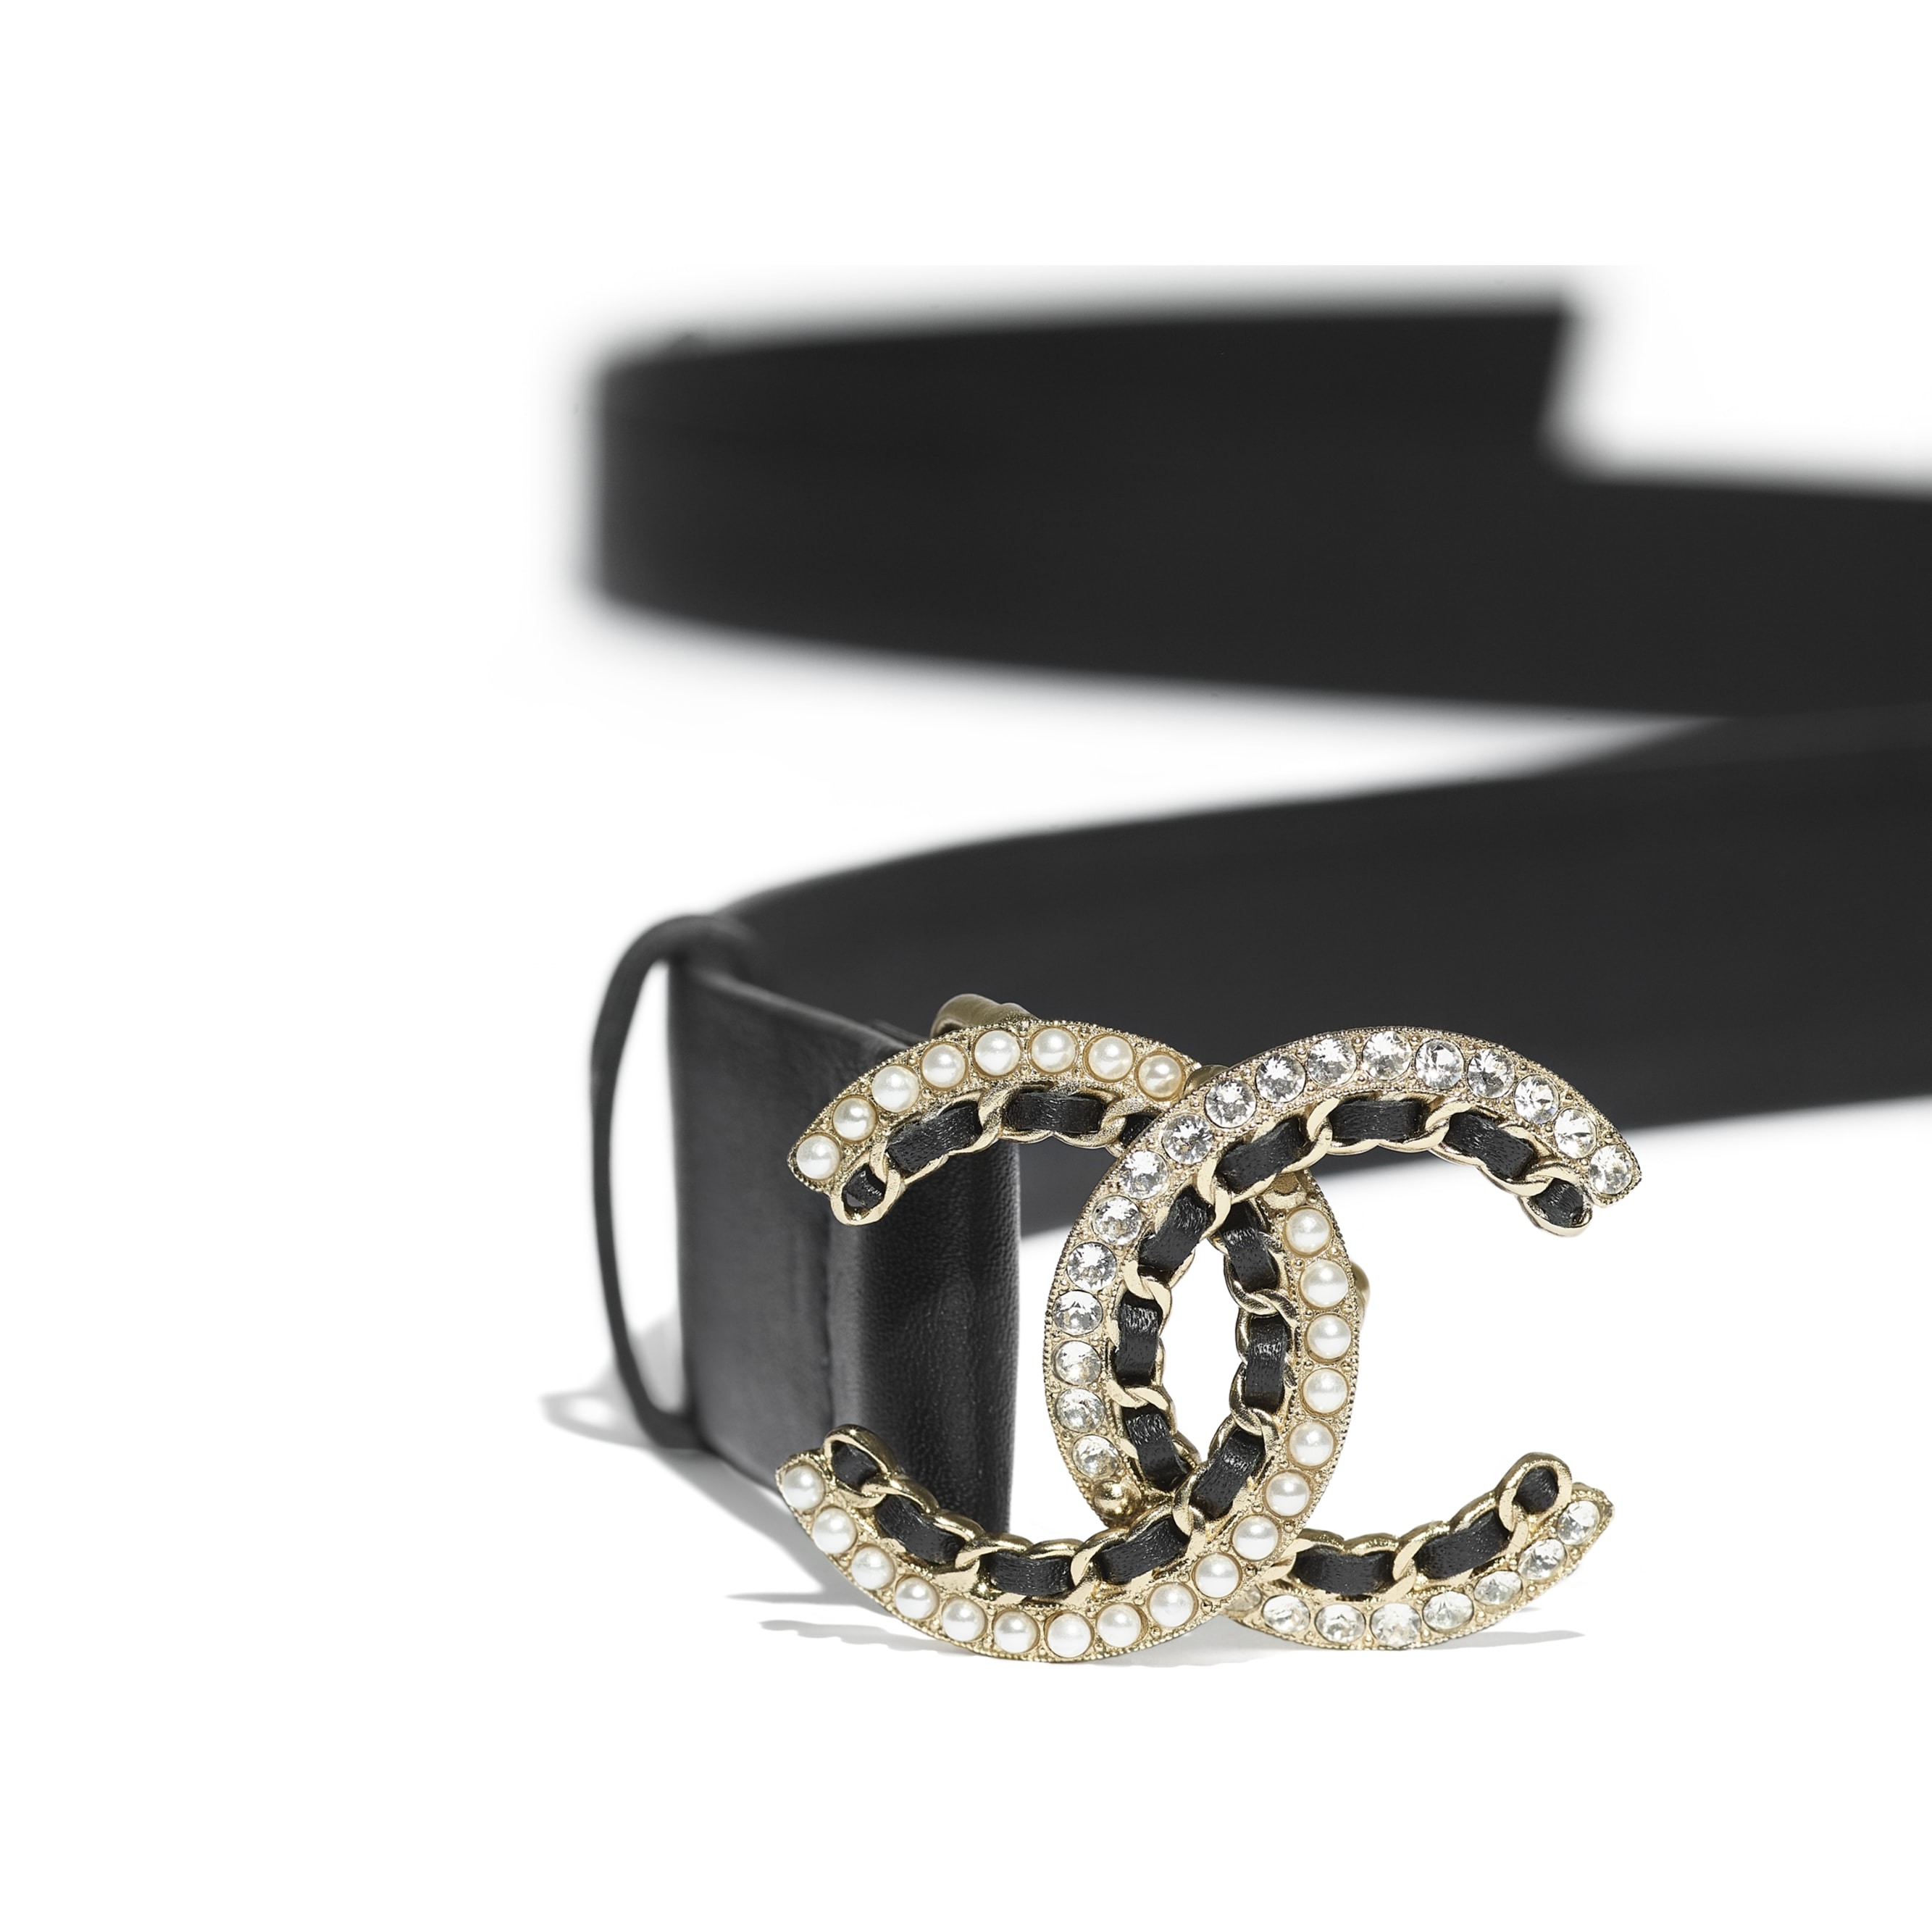 Belt - Black - Calfskin, Gold-Tone Metal, Glass Pearls & Strass - CHANEL - Alternative view - see standard sized version